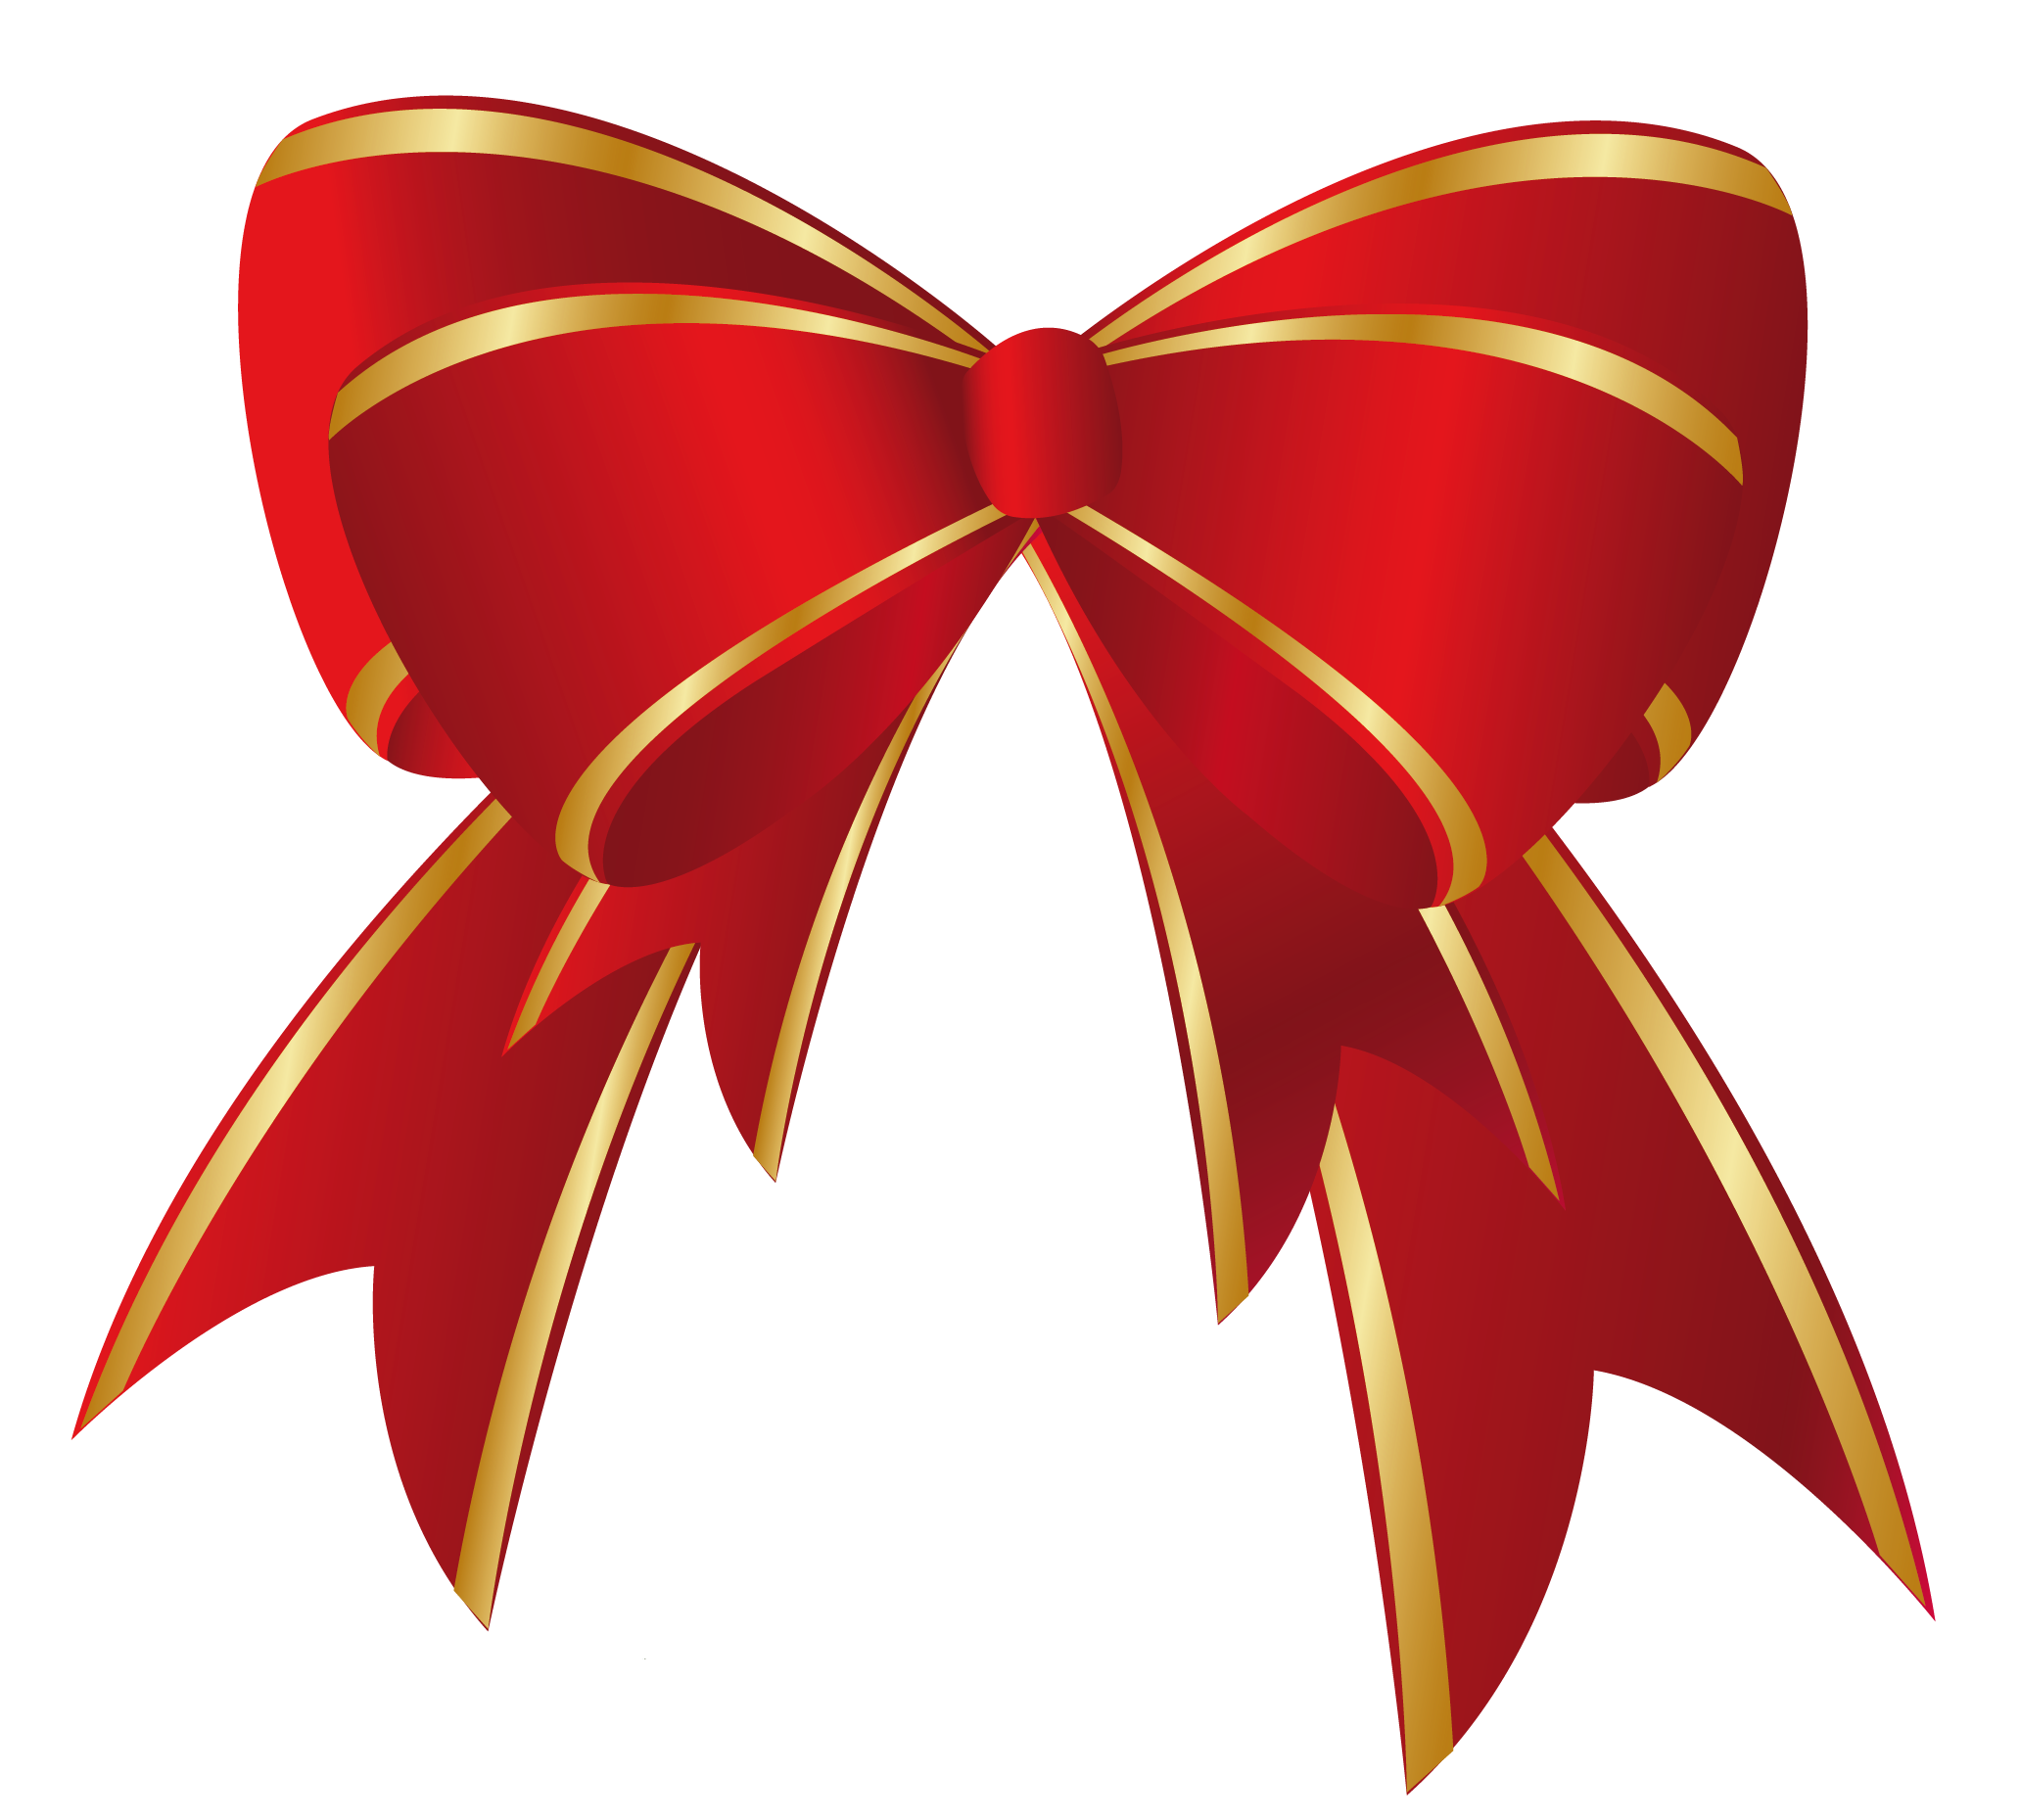 Bows clipart xmas. Christmas red gold bow